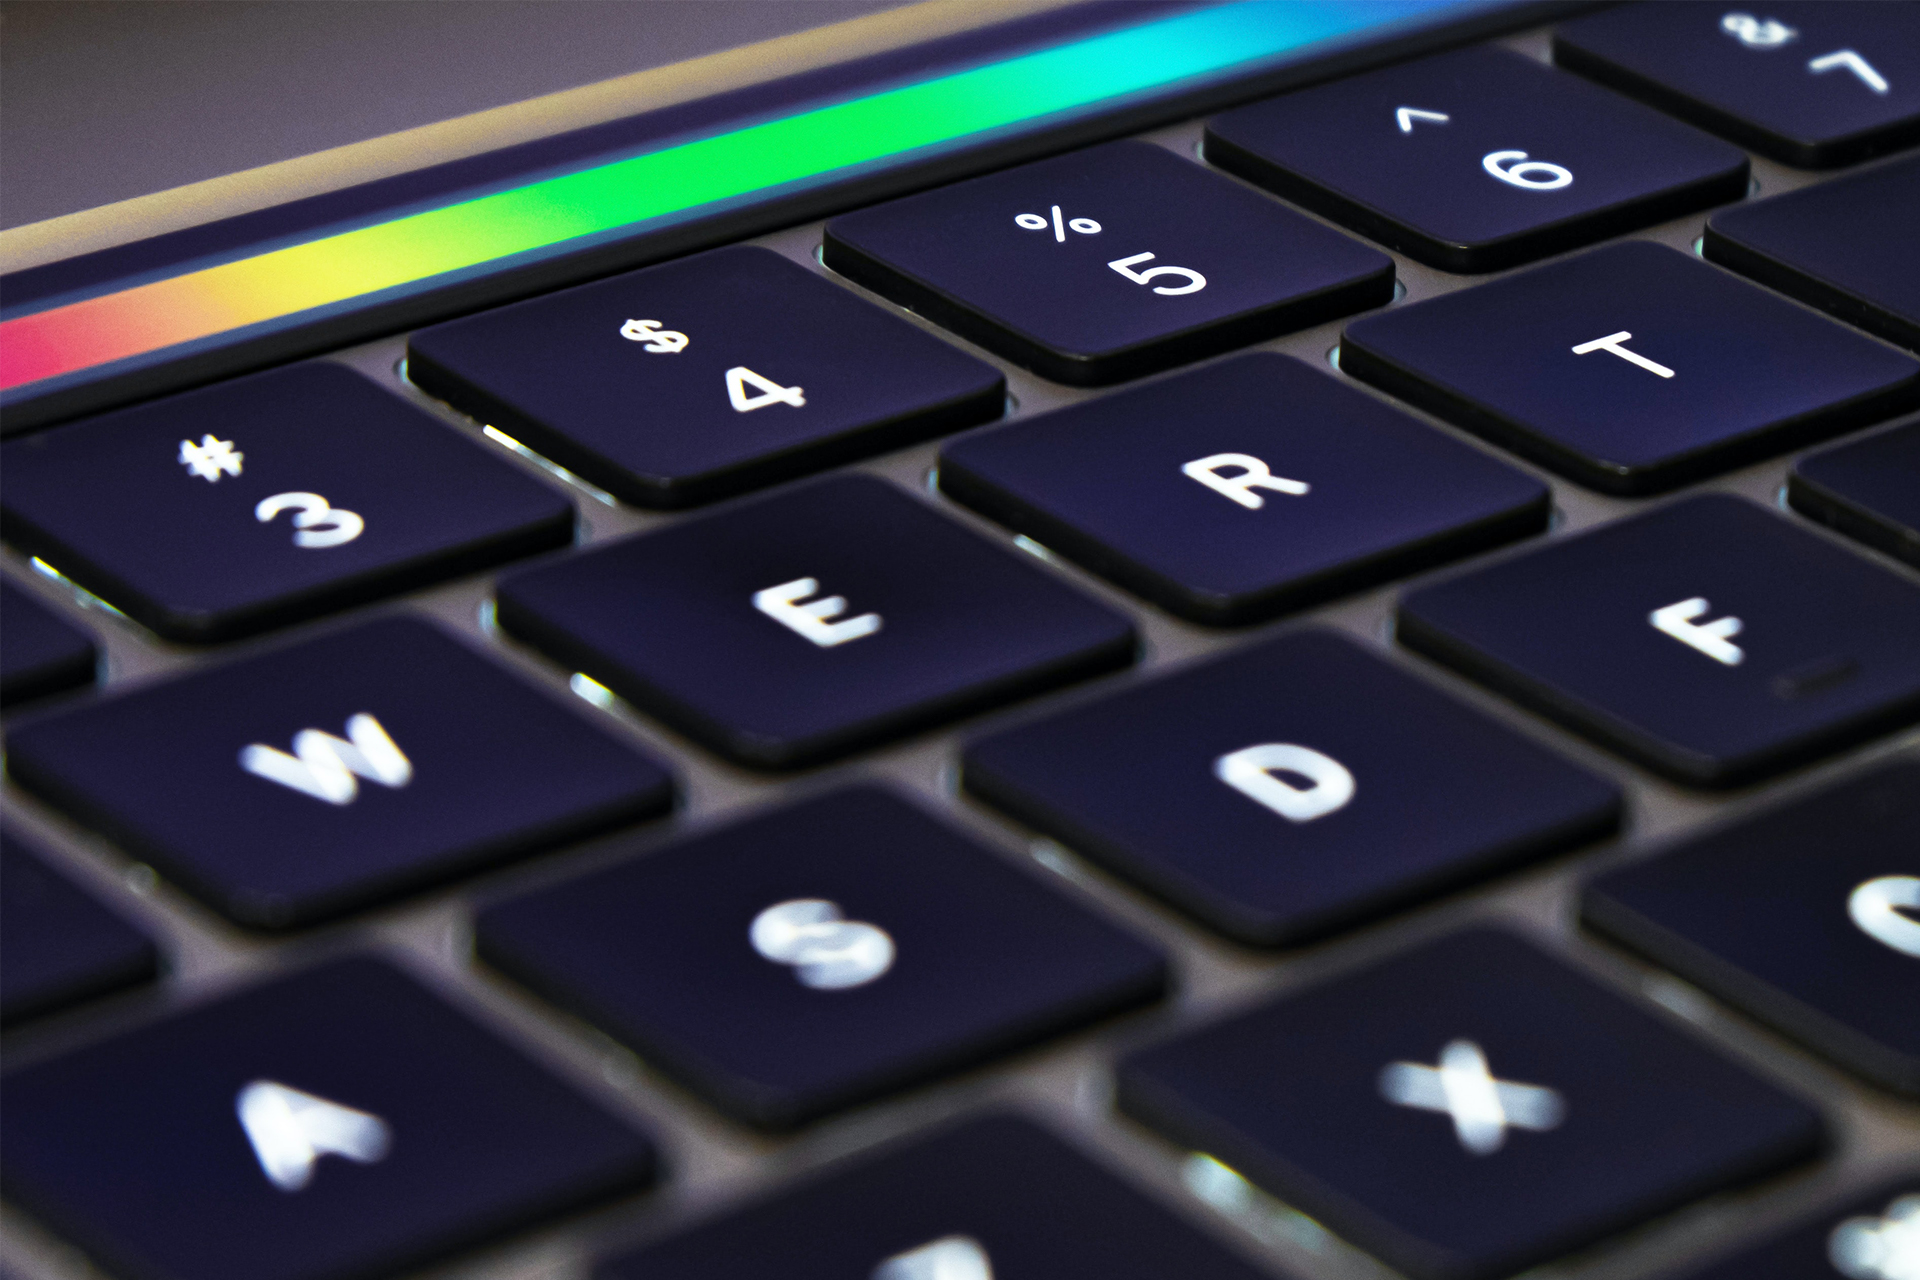 laptop keyboard with strip of rainbow color